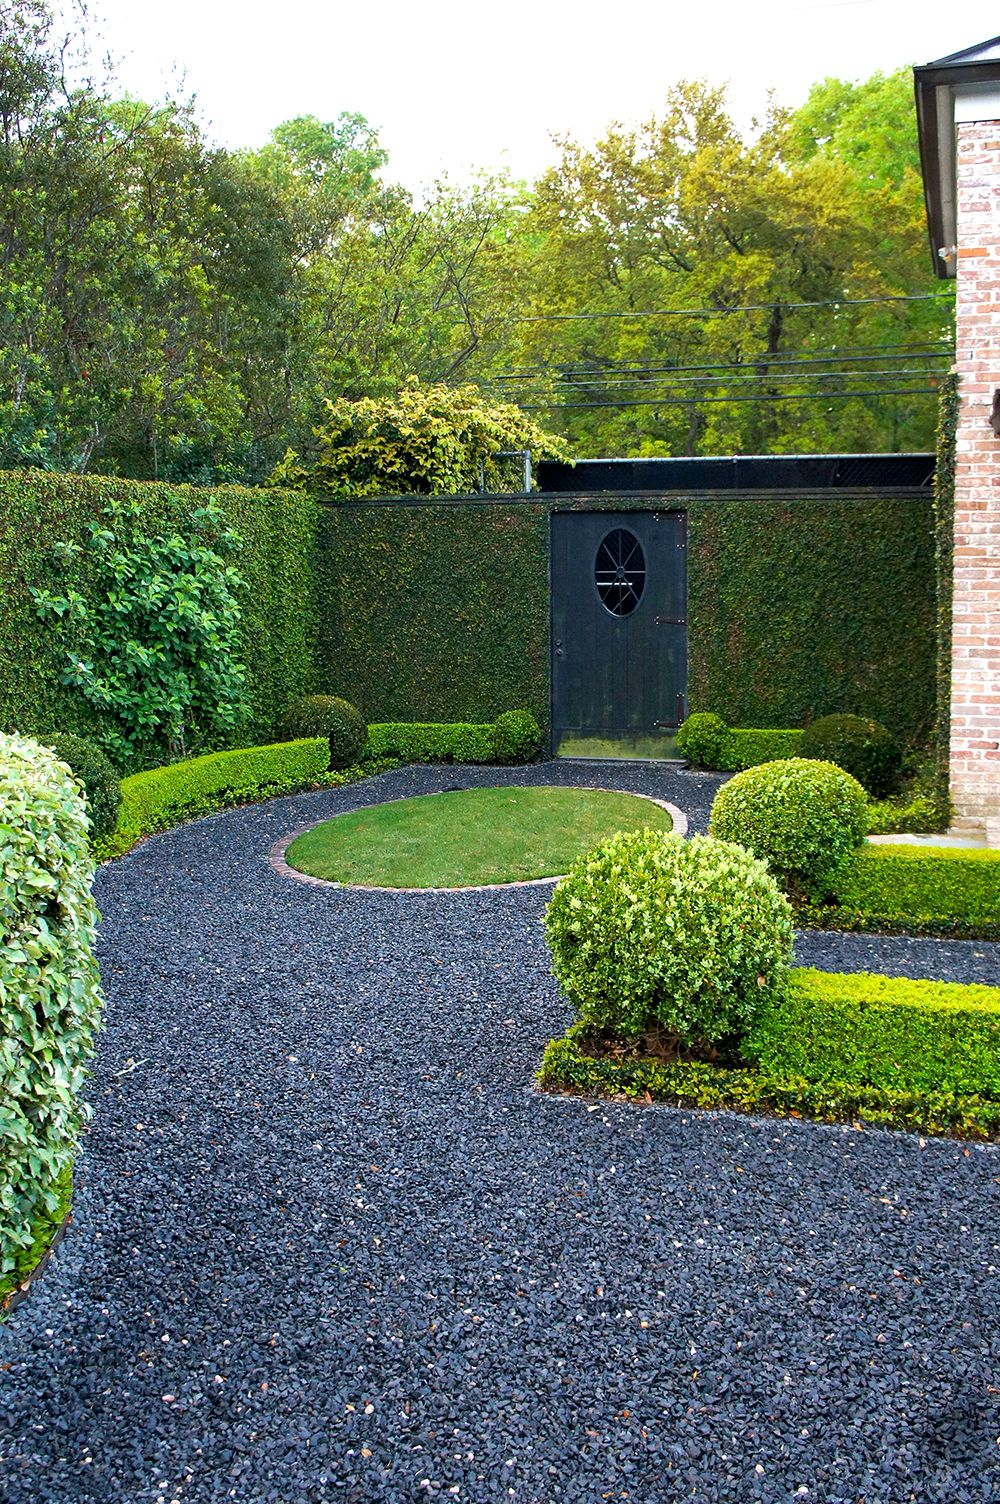 Behind The Private Driveway Is A Blackstar Gravel Path Leading To